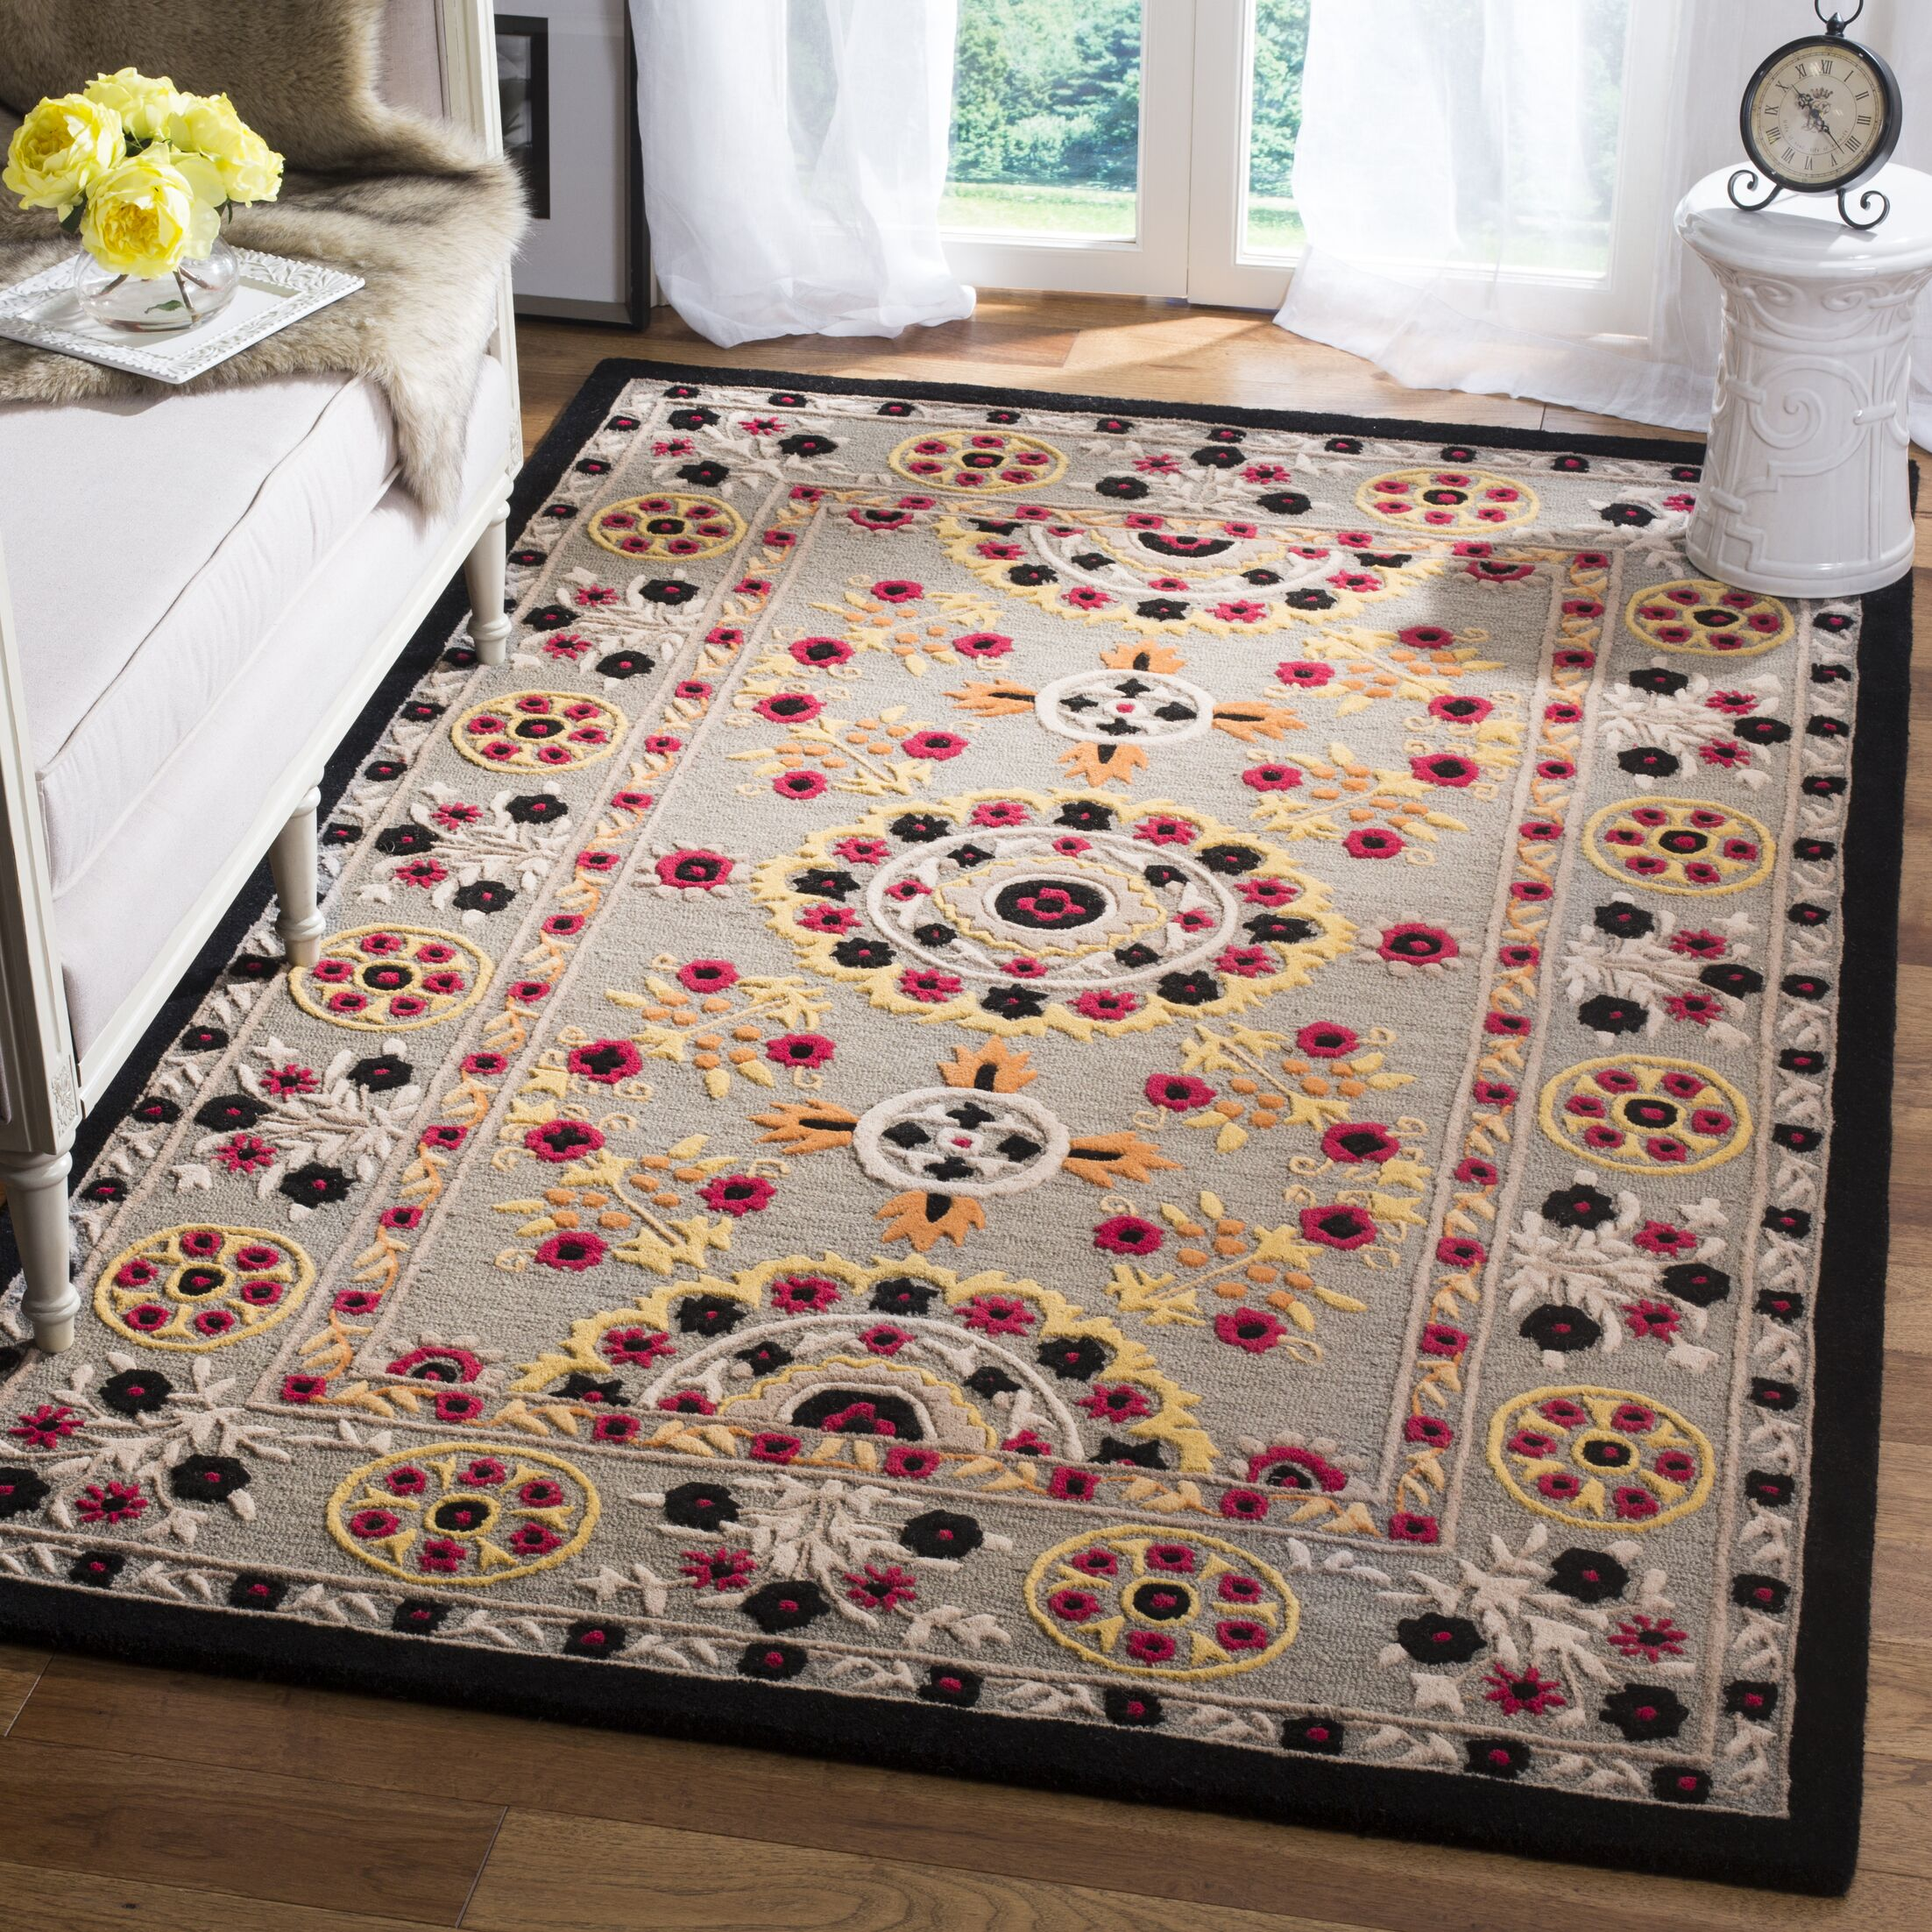 Eatonville Hand Tufted Wool Light Gray Area Rug Rug Size: Square 5'